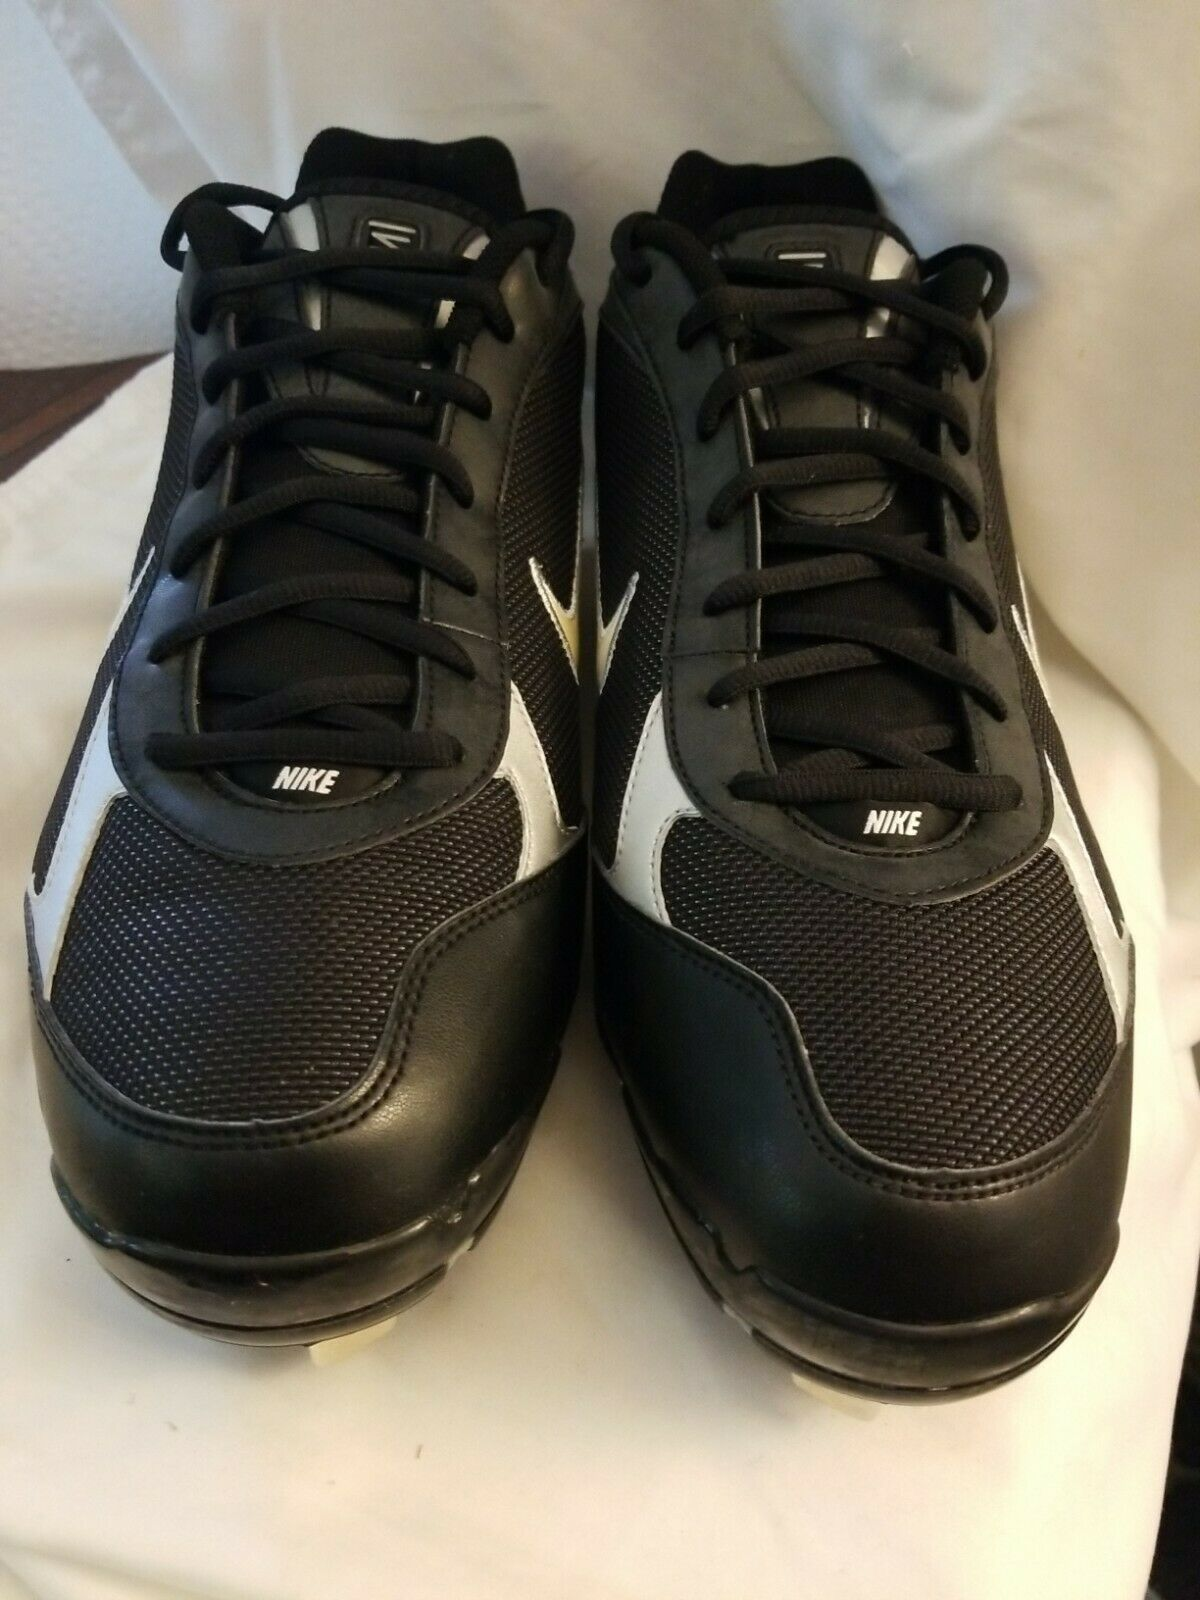 Primary image for NIKE Shox Fuse Metal - Blk/Wht Baseball Softball Cleats Size 12.5 New